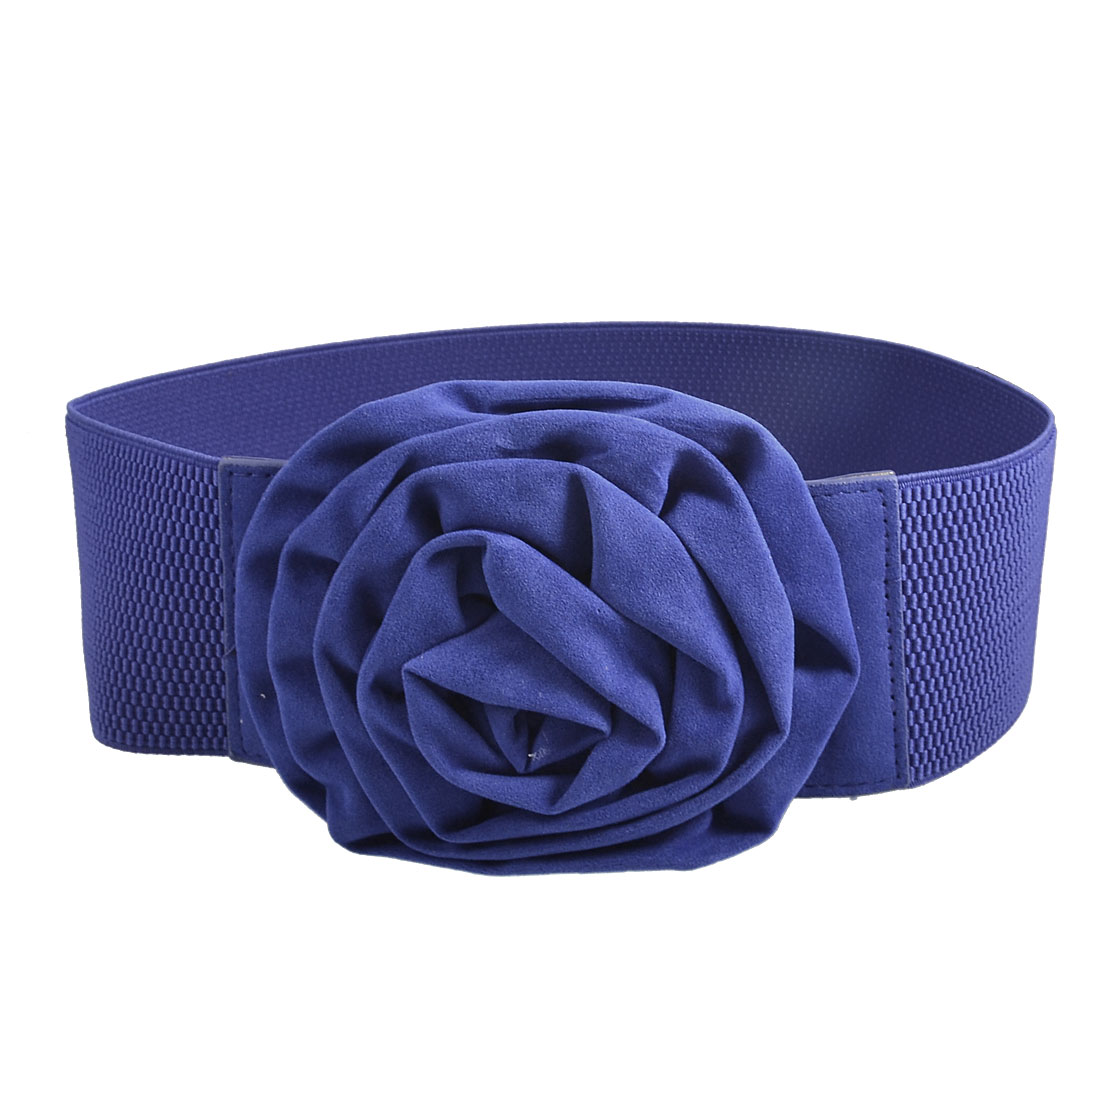 Women Adjustable Interlocking Buckle Royal Blue Wide Stretch Waist Belt